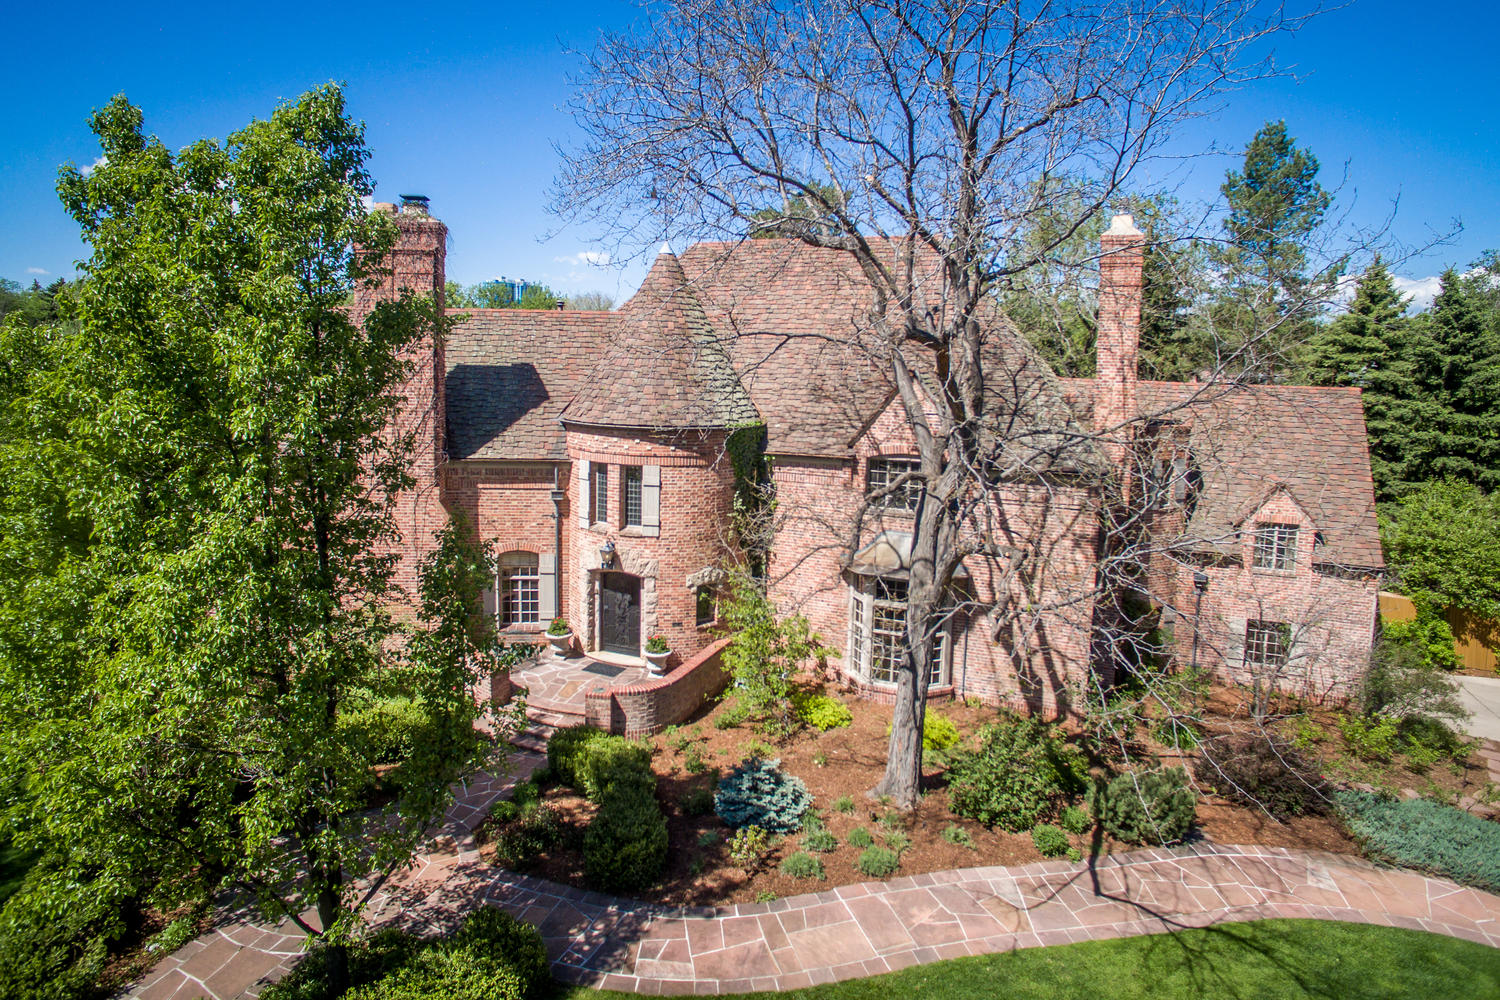 Moradia para Venda às Very Special Tudor Located in Heart of Country Club Historic Neighborhood 401 Race Street Denver, Colorado, 80206 Estados Unidos